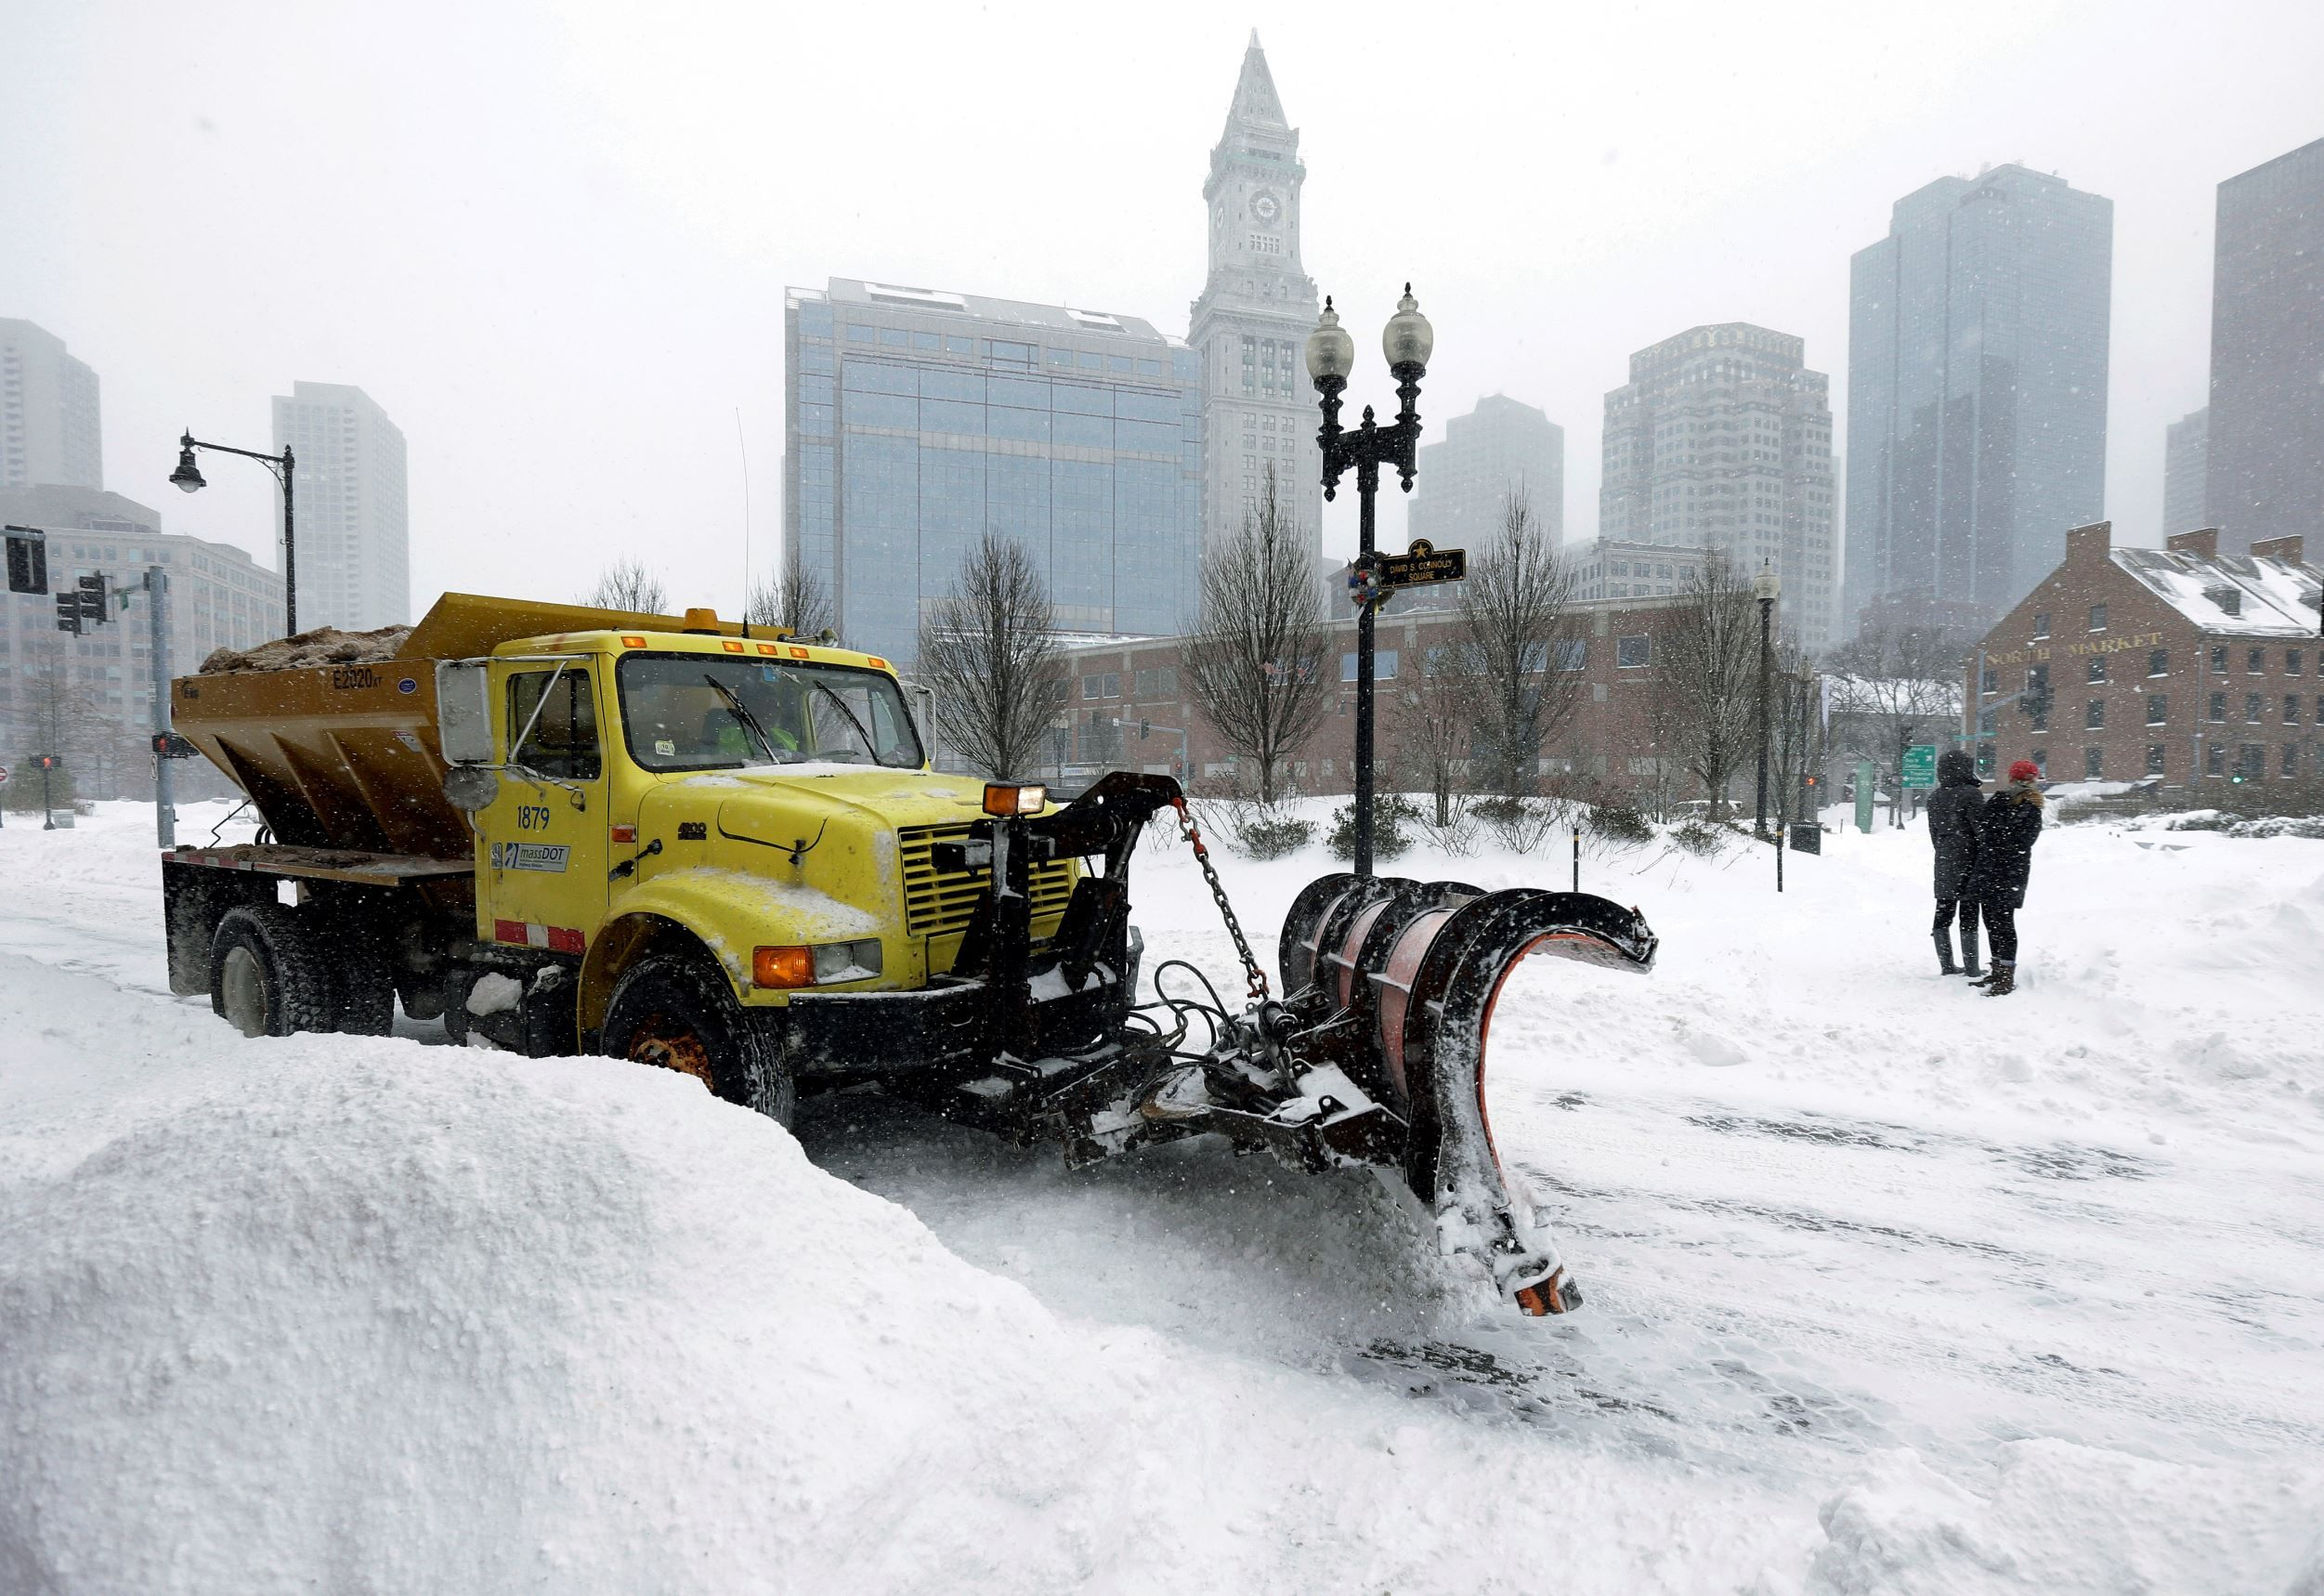 A snowplow clears a street near Quincy Market, Tuesday